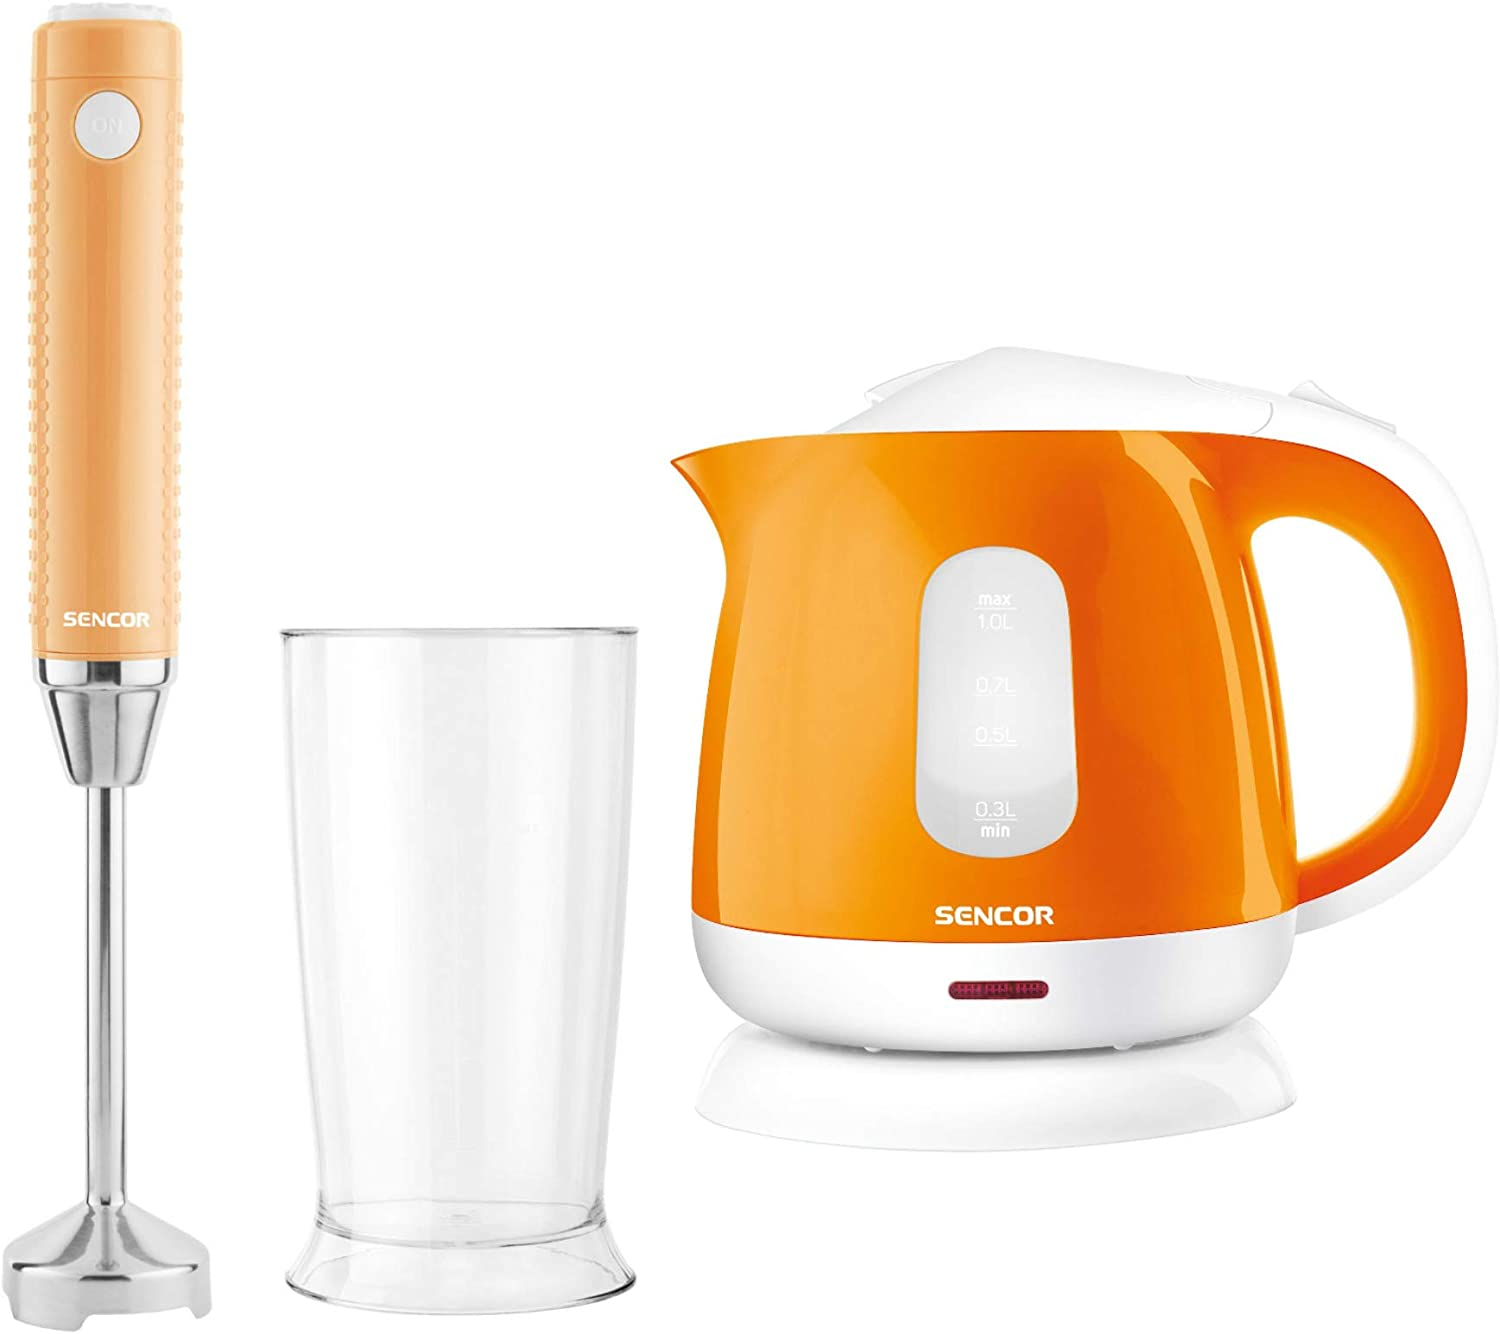 Sencor Extra Slim Hand Blender and Small Electric Kettle Bundle (Orange)